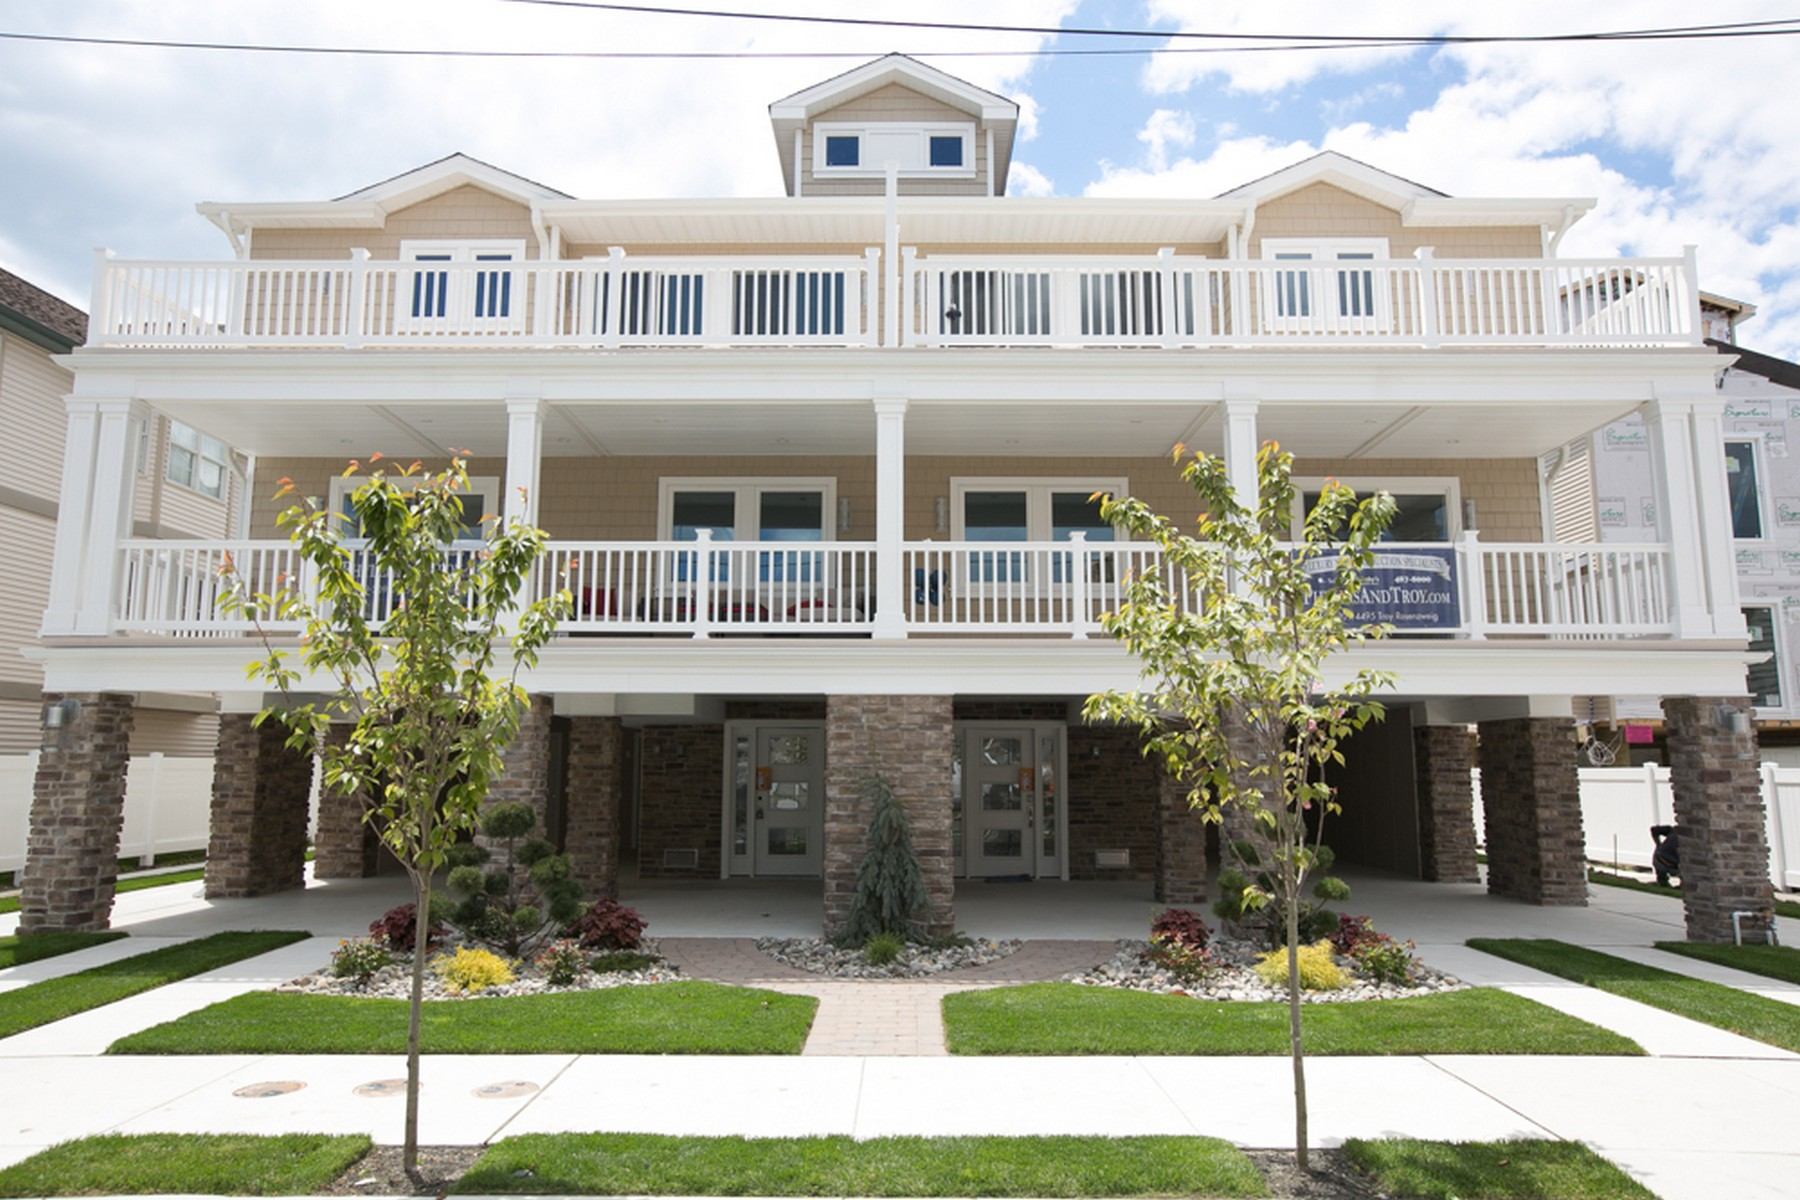 Multi-Family Home for Sale at 114-116 N. Jefferson D 114-116 N. Jefferson UNIT D, Margate, New Jersey, 08402 United States